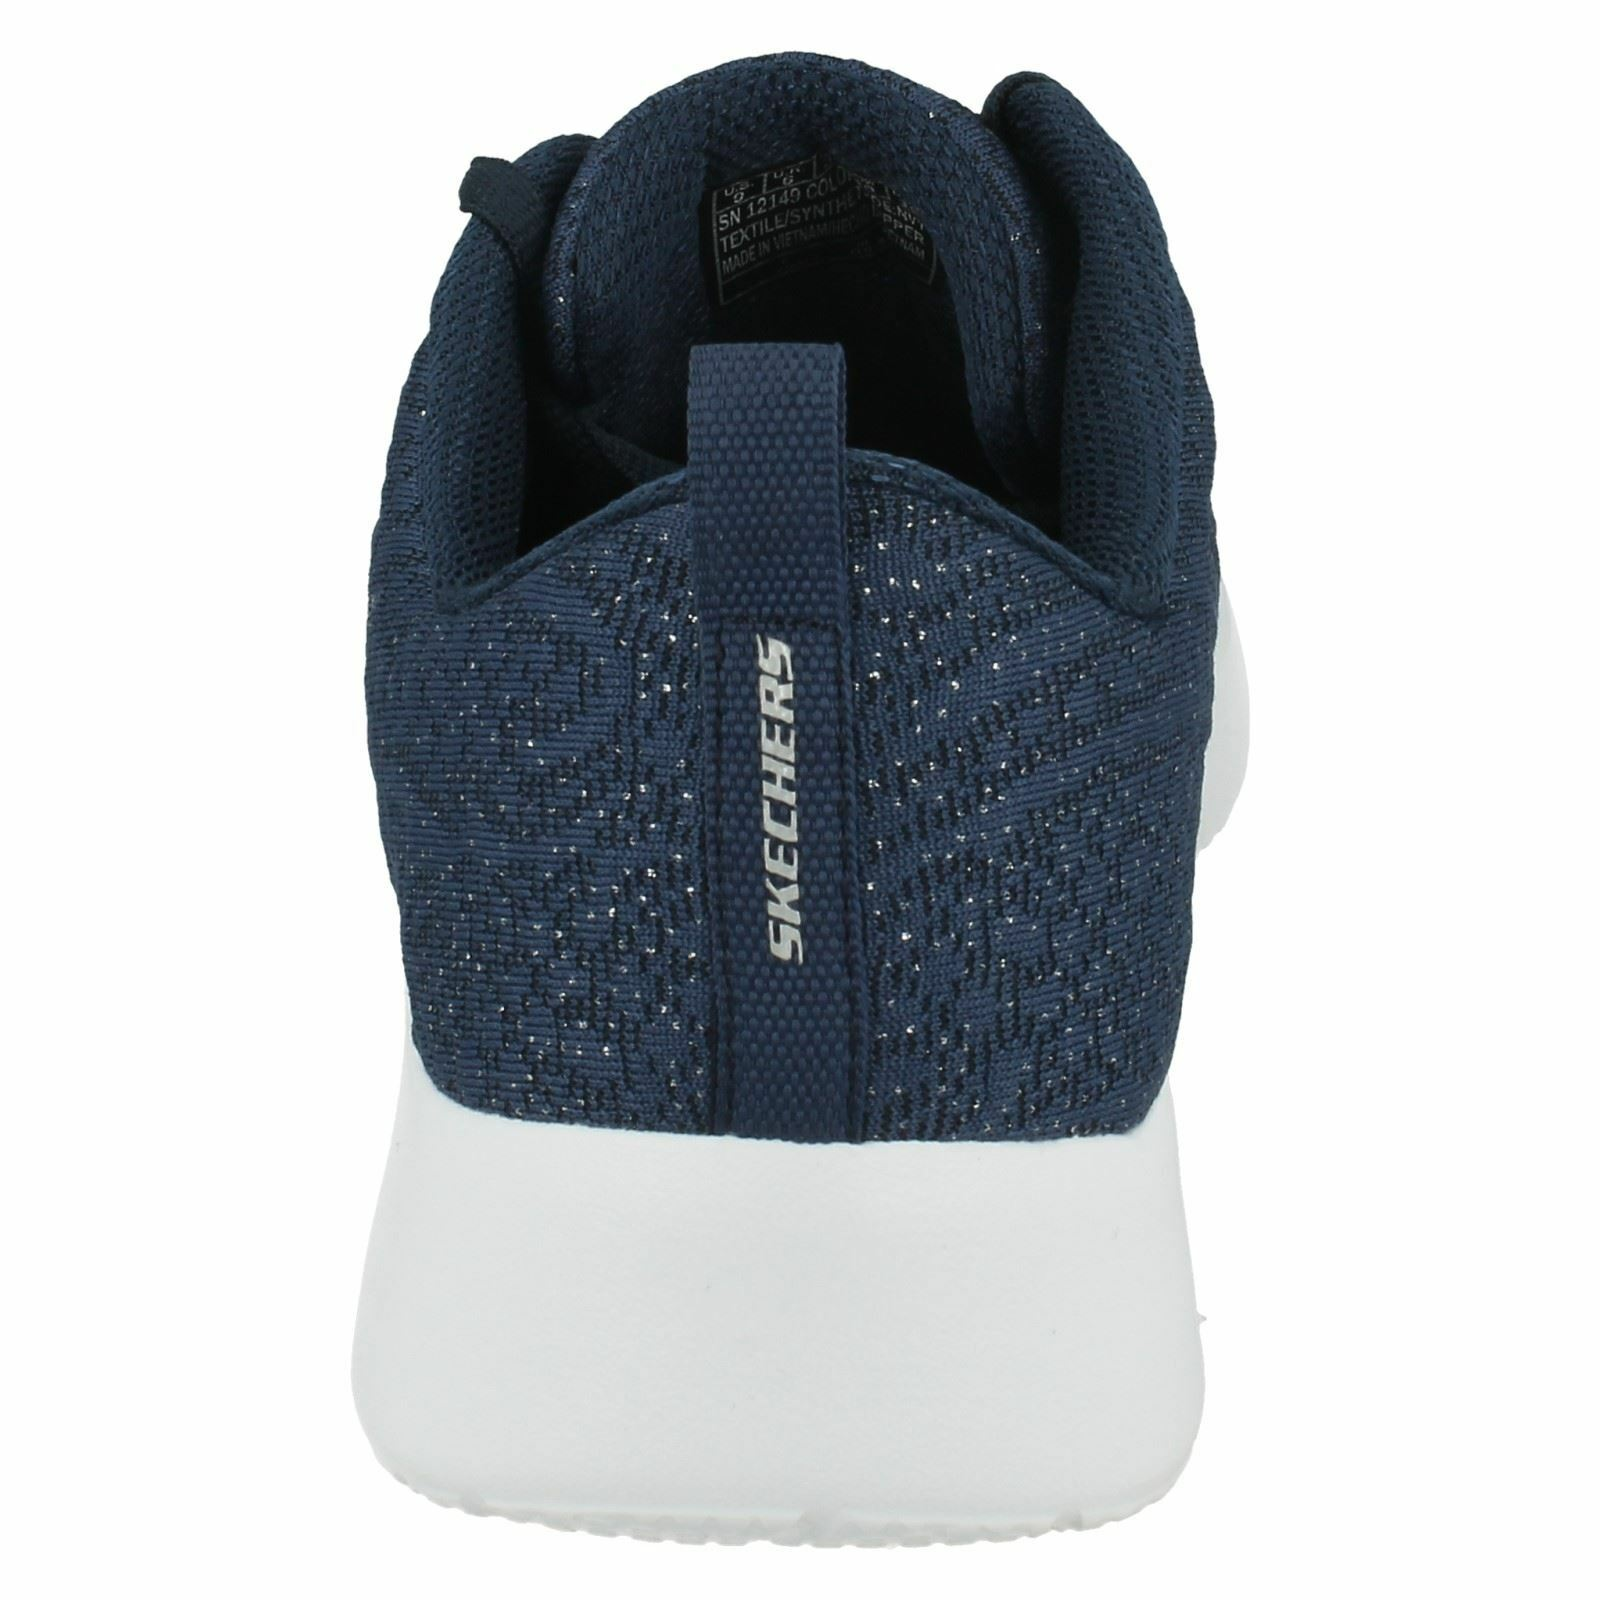 LADIES SKECHERS LACE TRAINERS UP MEMORY FOAM CASUAL TRAINERS LACE DYNAMIGHT BLISSFUL 12149 e45022